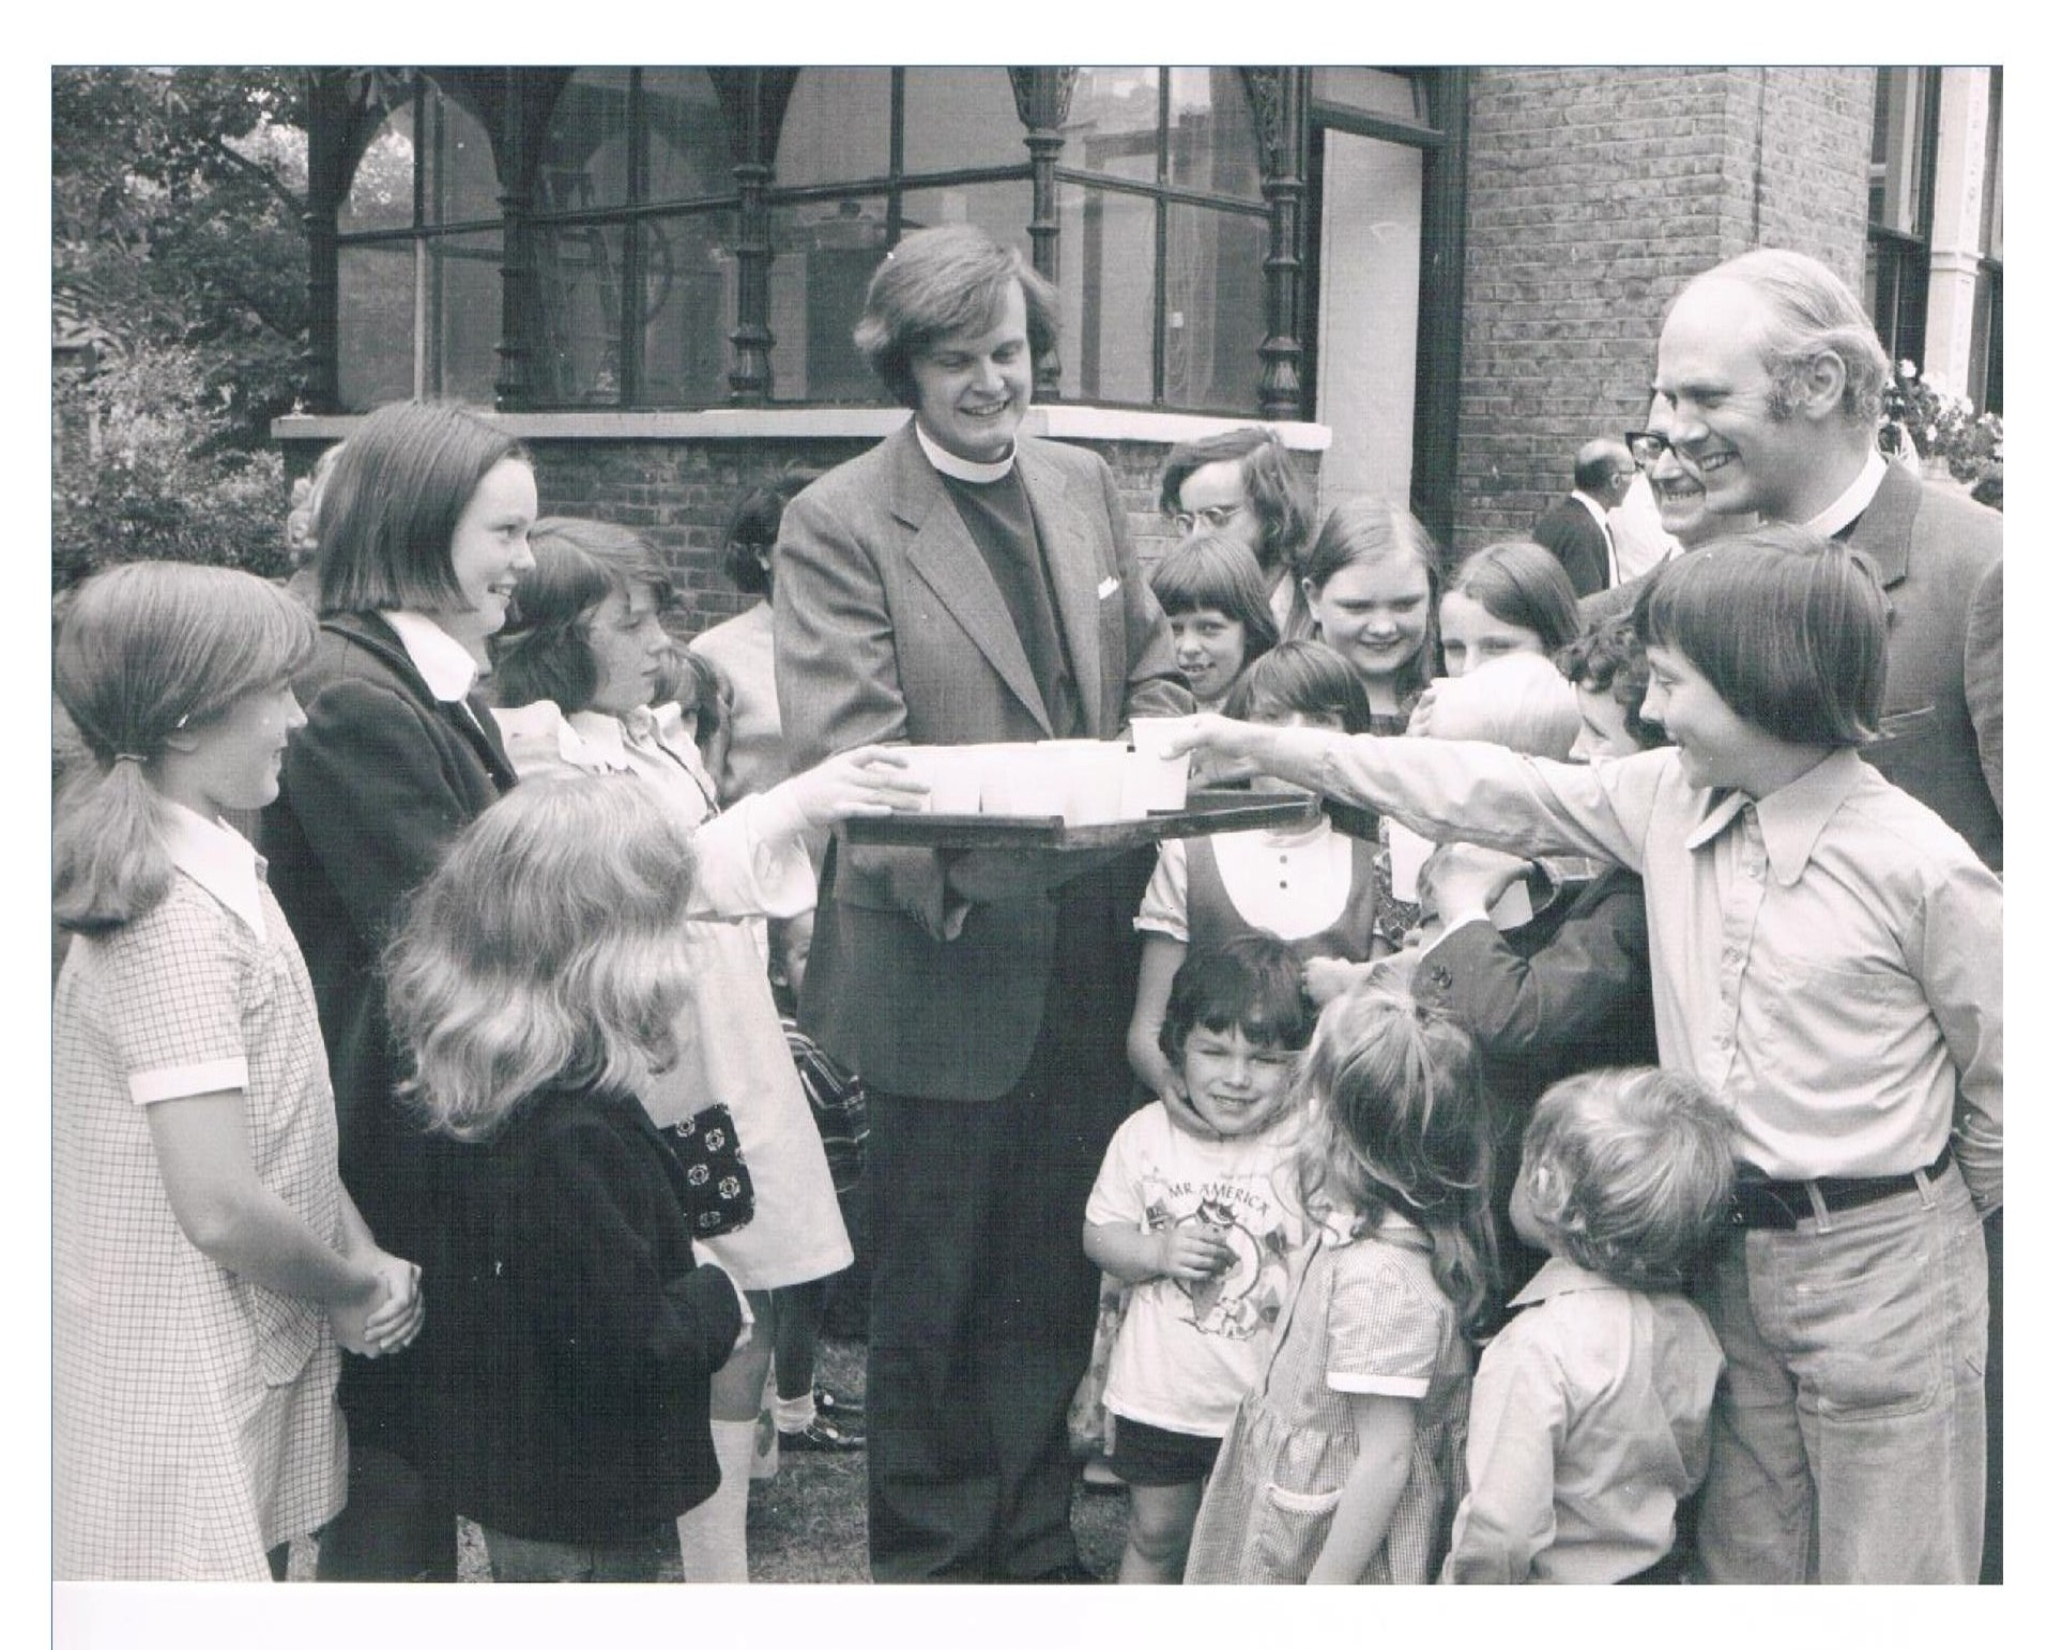 Photo of children with James Atwell in 1970s